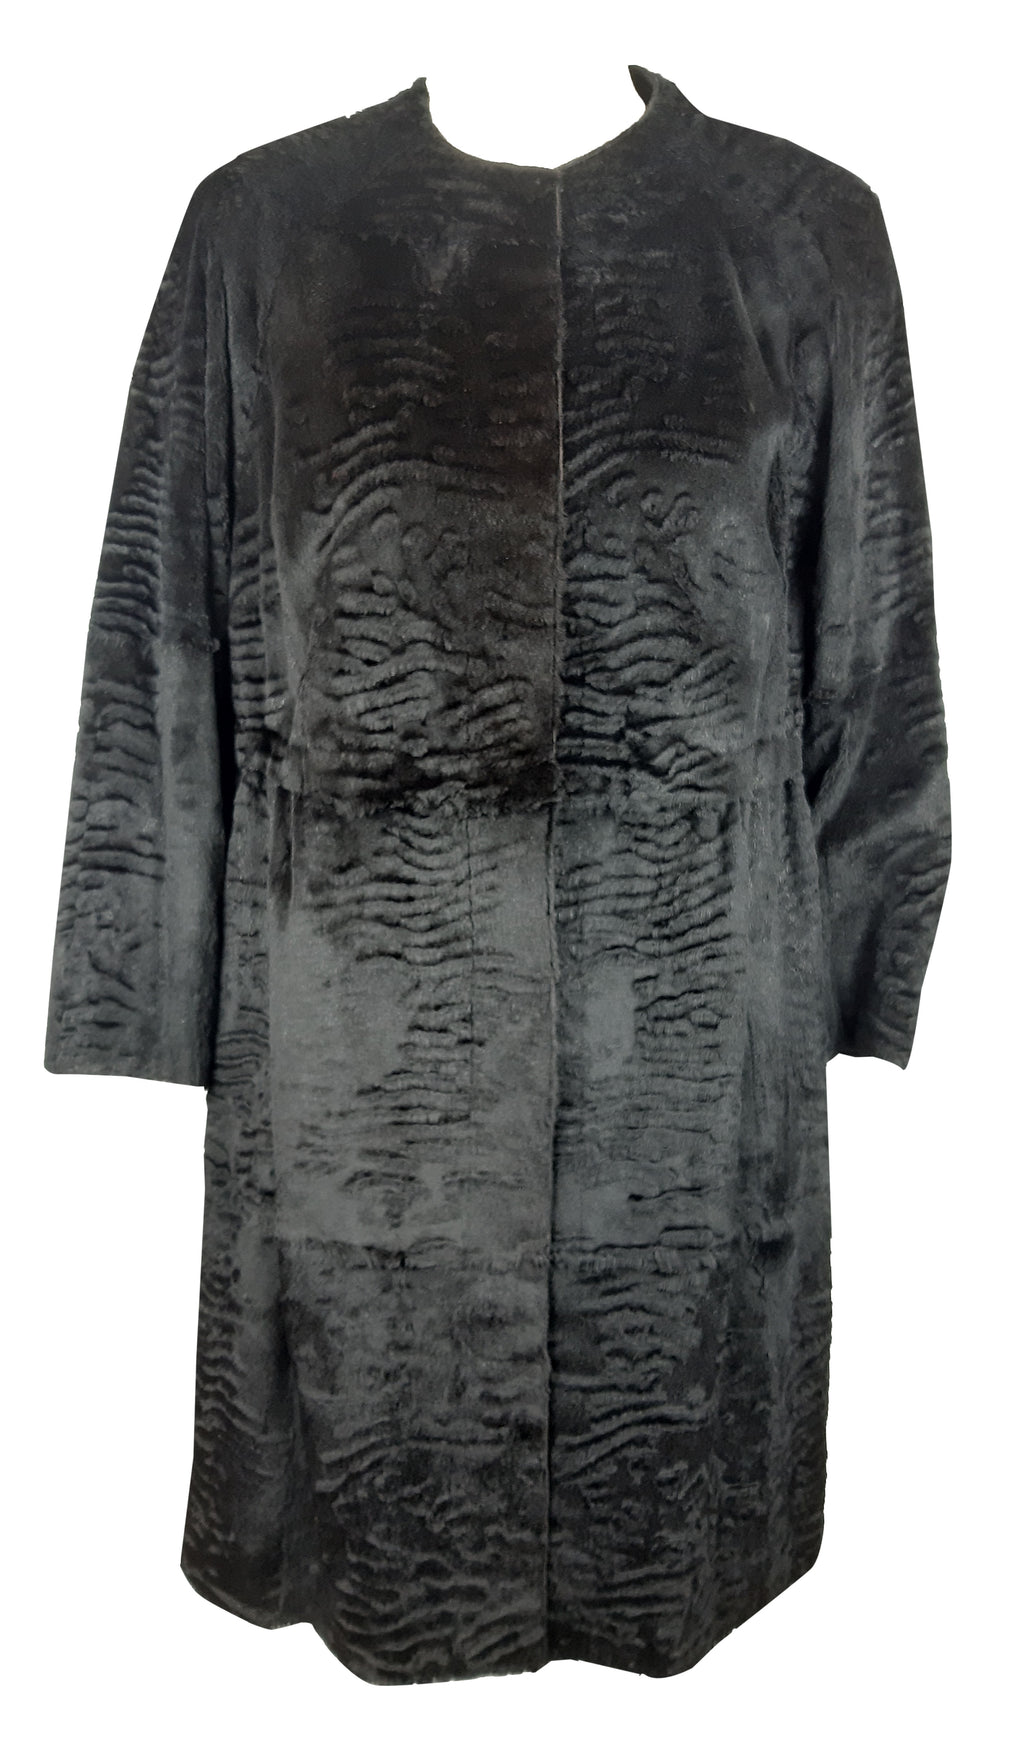 Black Fur Coat with Zebra Print Interior Size M/L (INT)